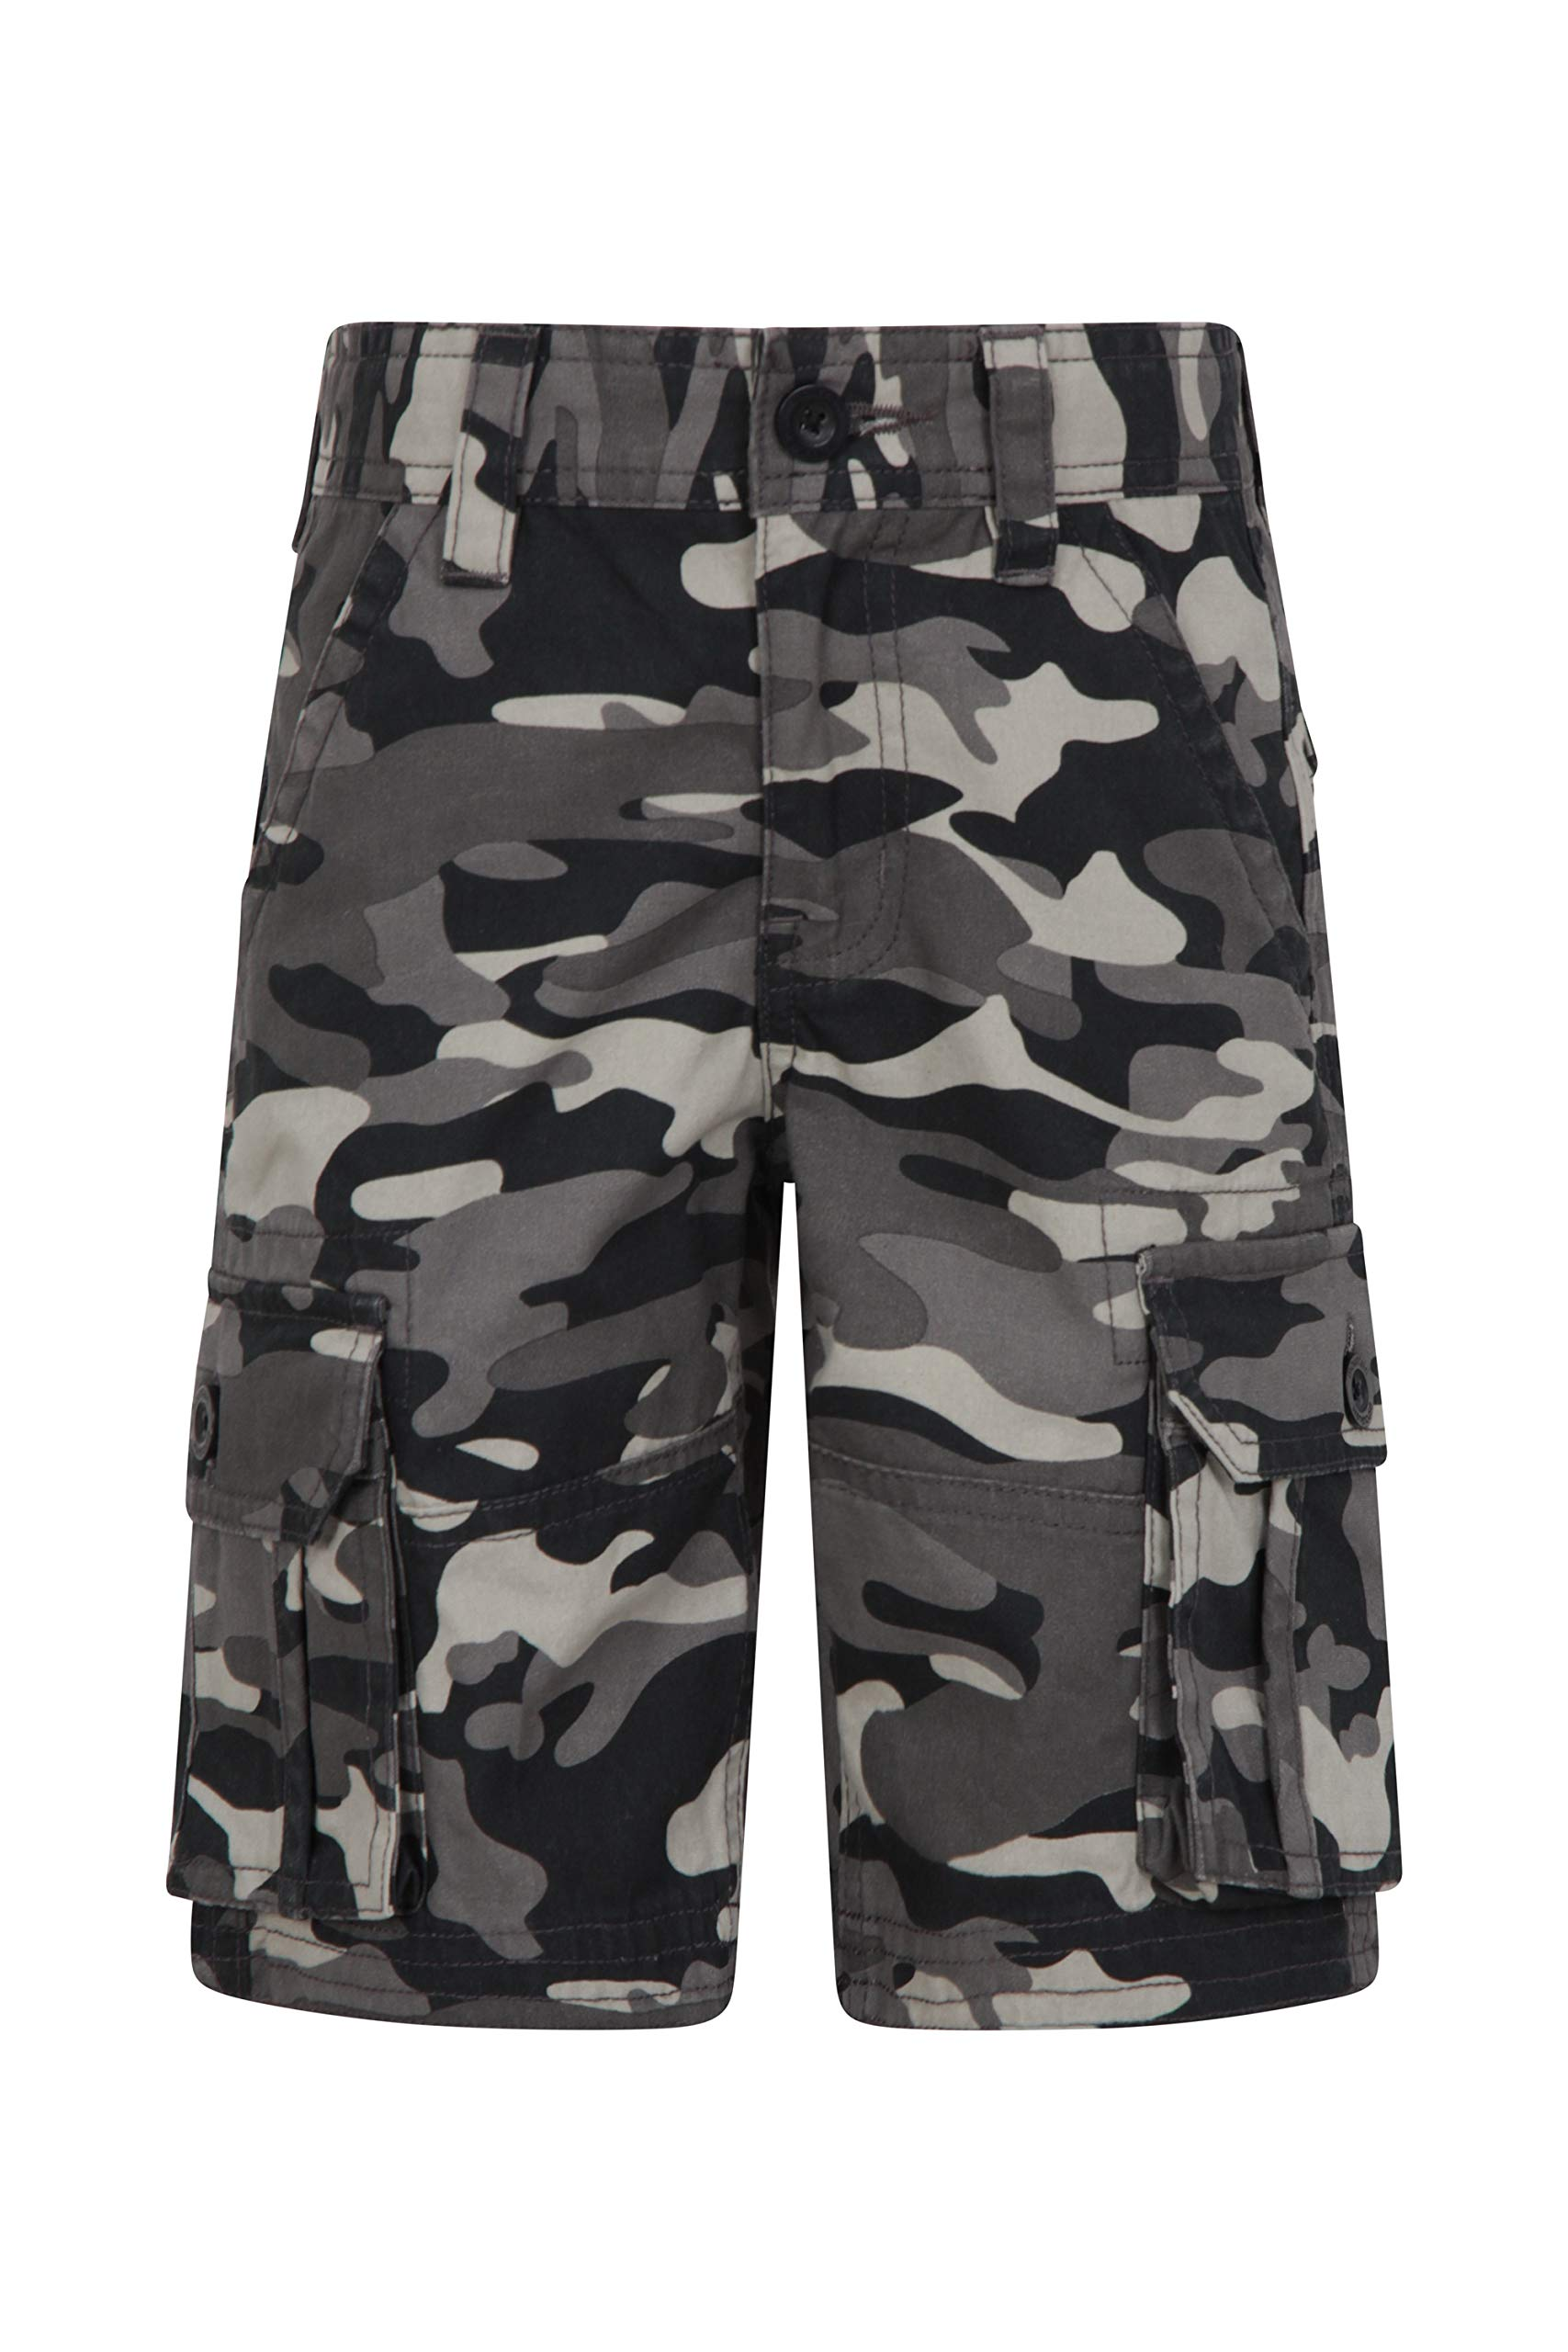 Mountain Warehouse Kids Camo Cargo Shorts - 100% Cotton Summer Pants Black 7-8 Years by Mountain Warehouse